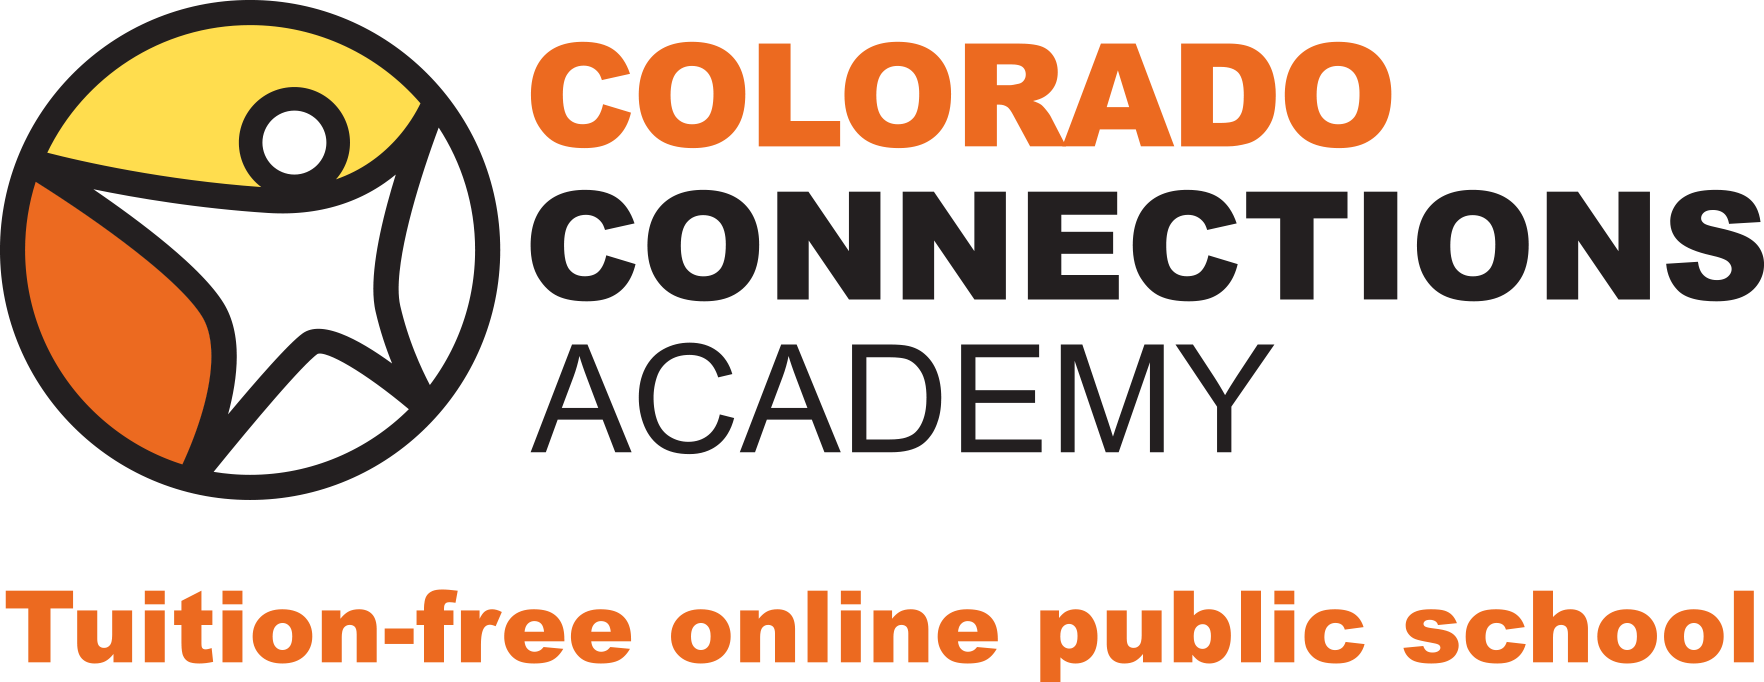 Colorado Connections 2017 logo